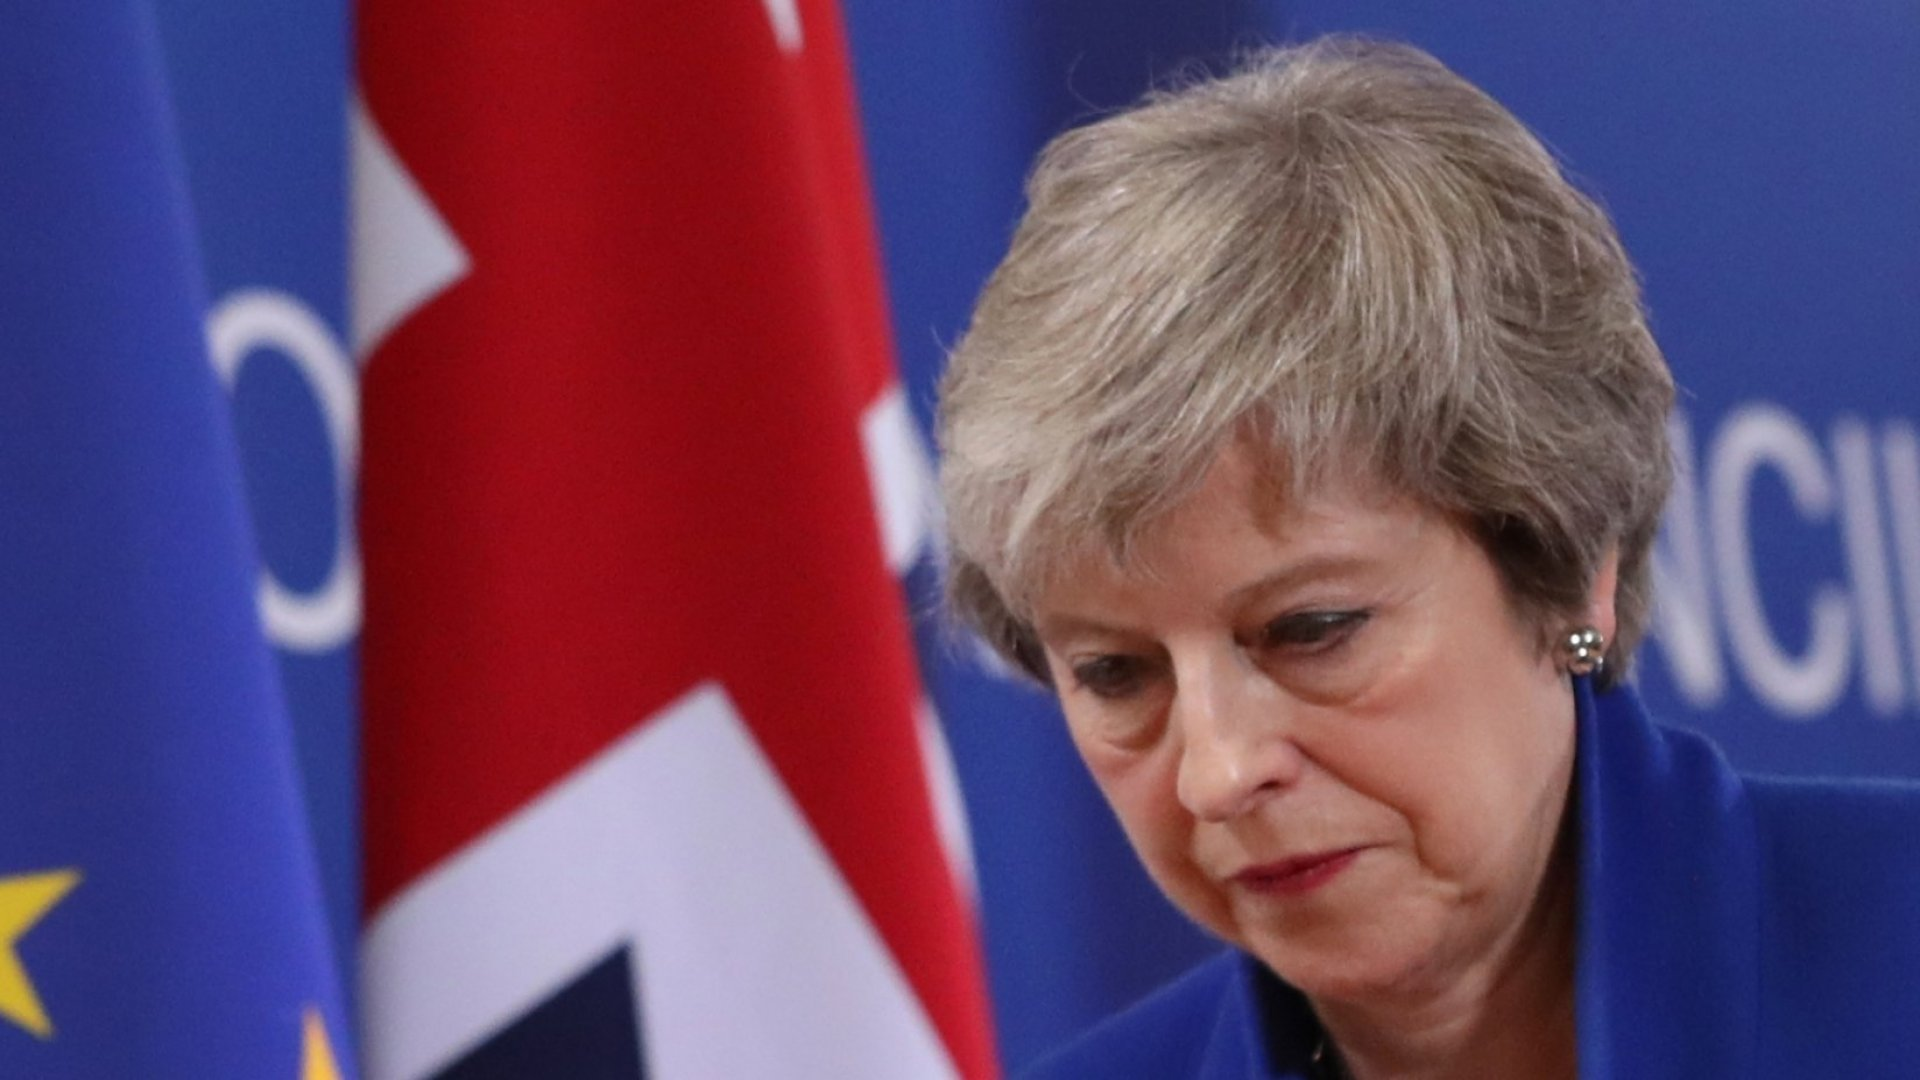 Theresa May Offers to Resign If Her Brexit Deal Passes in Parliament